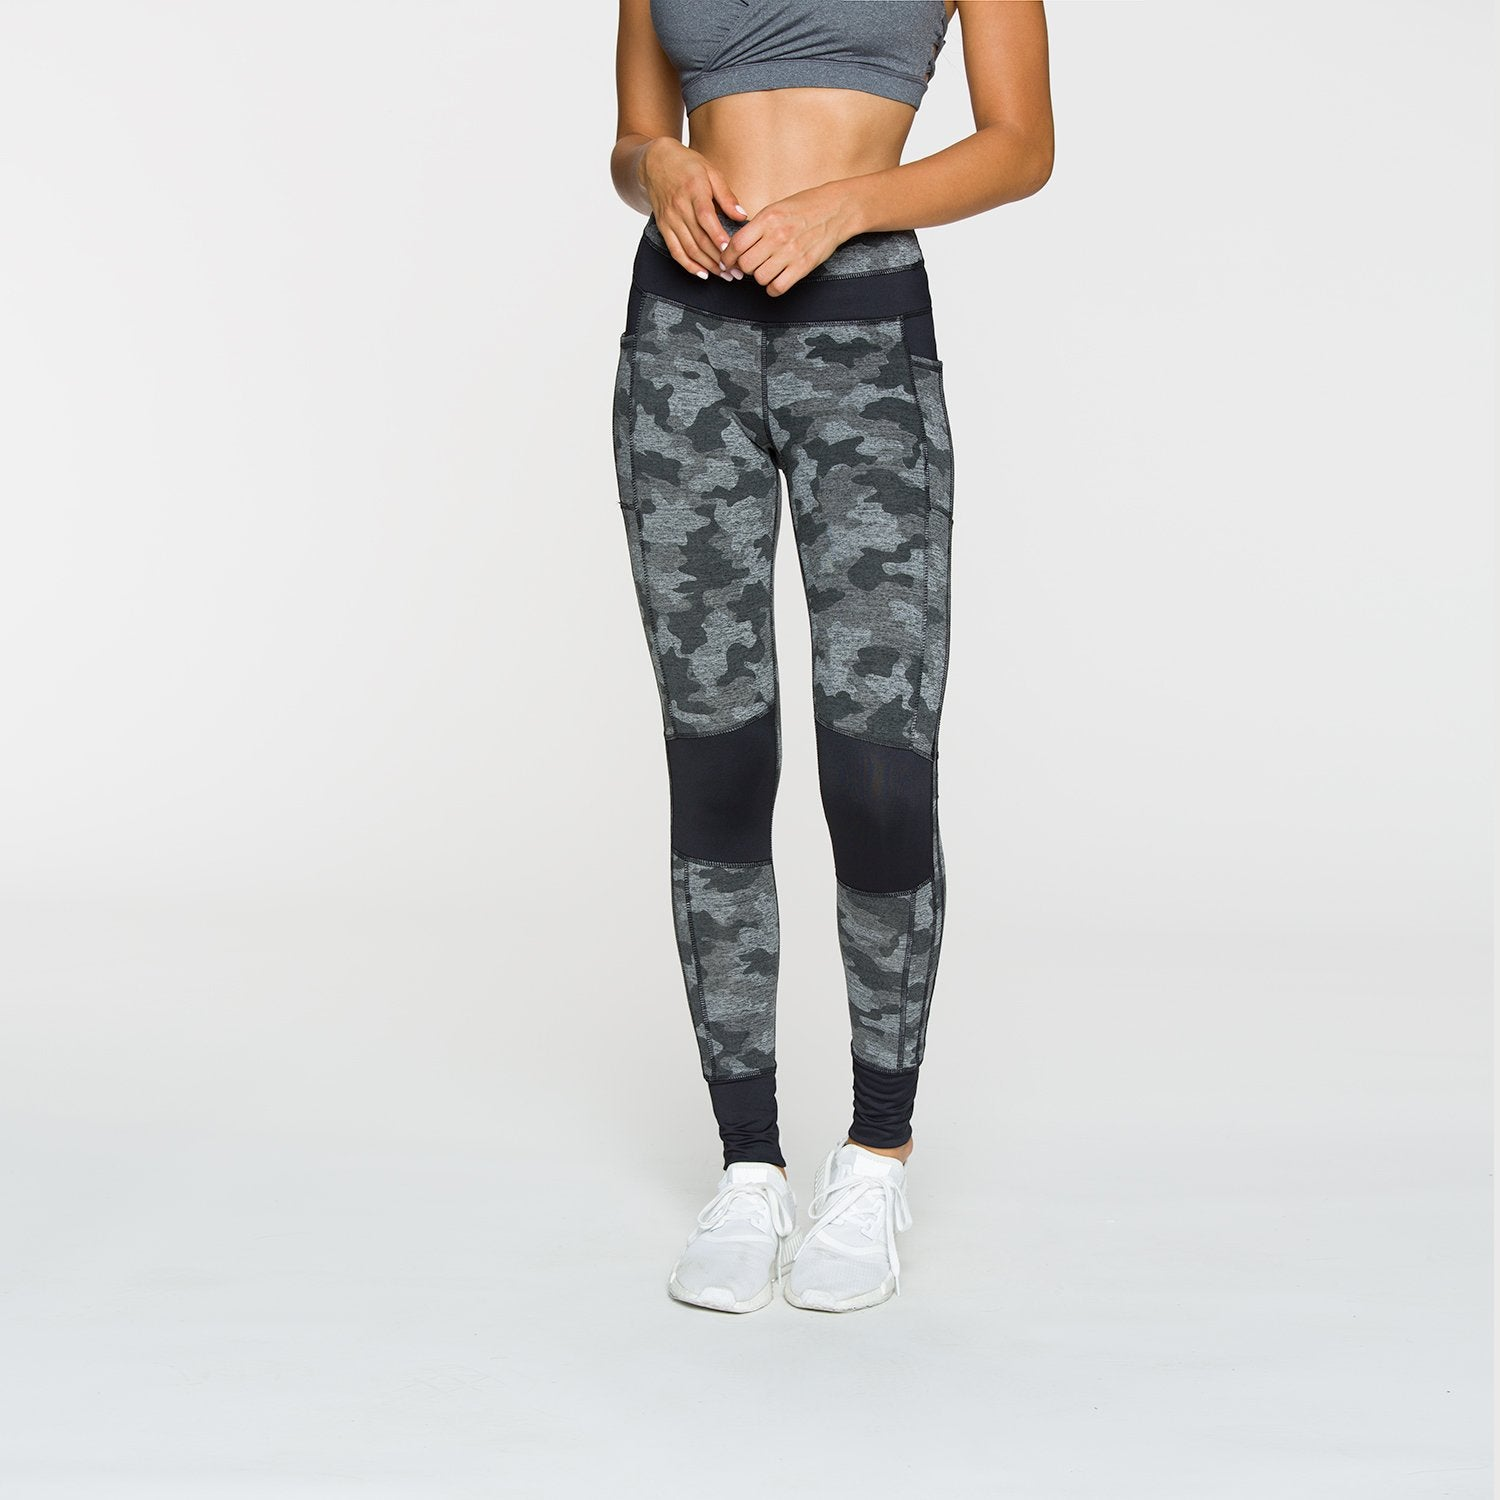 Kyodan Warm Camo Legging